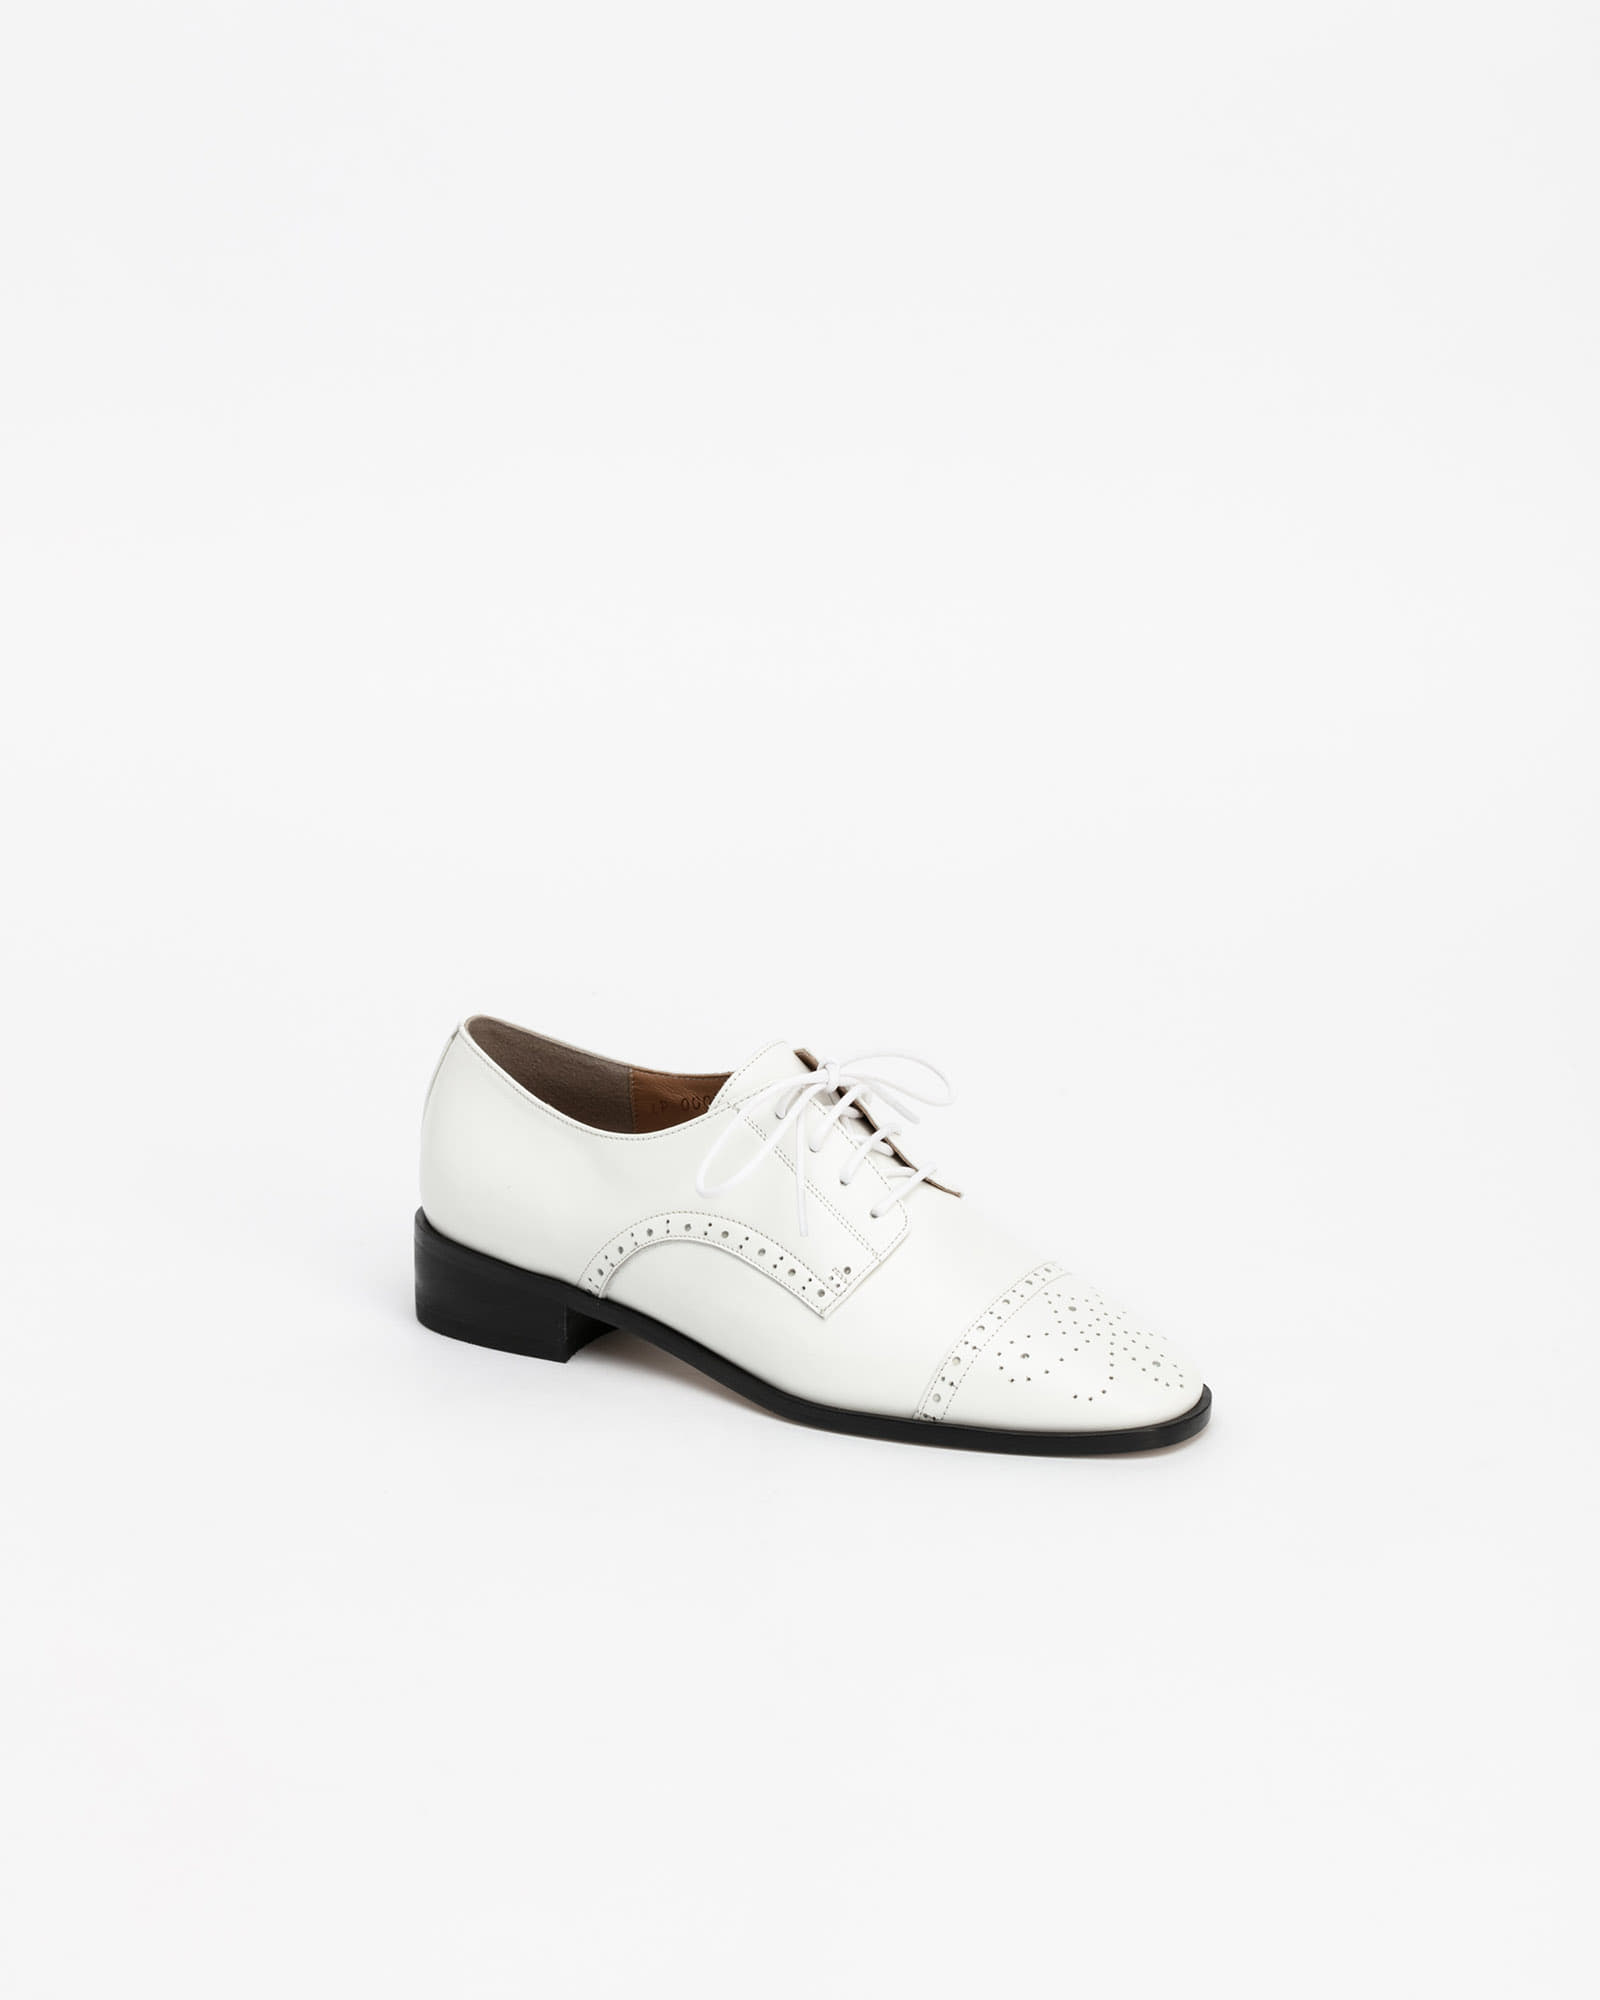 Joanne Oxford Loafers in White